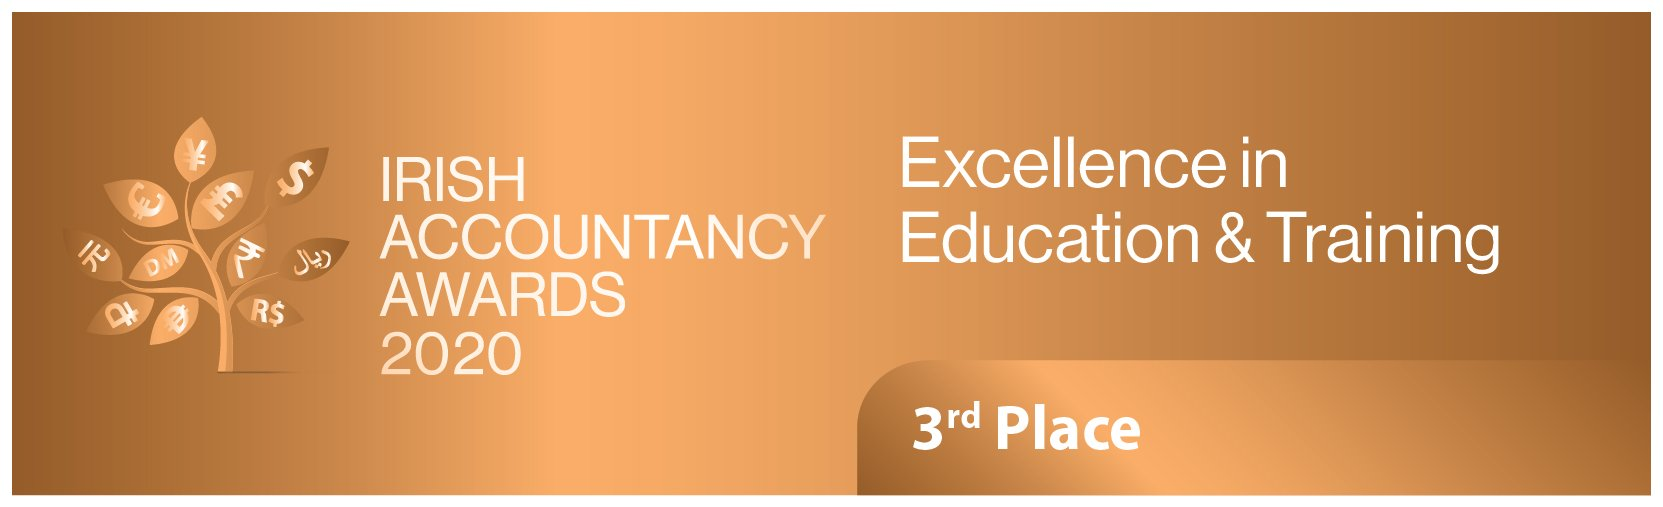 Excellence in Education & Training